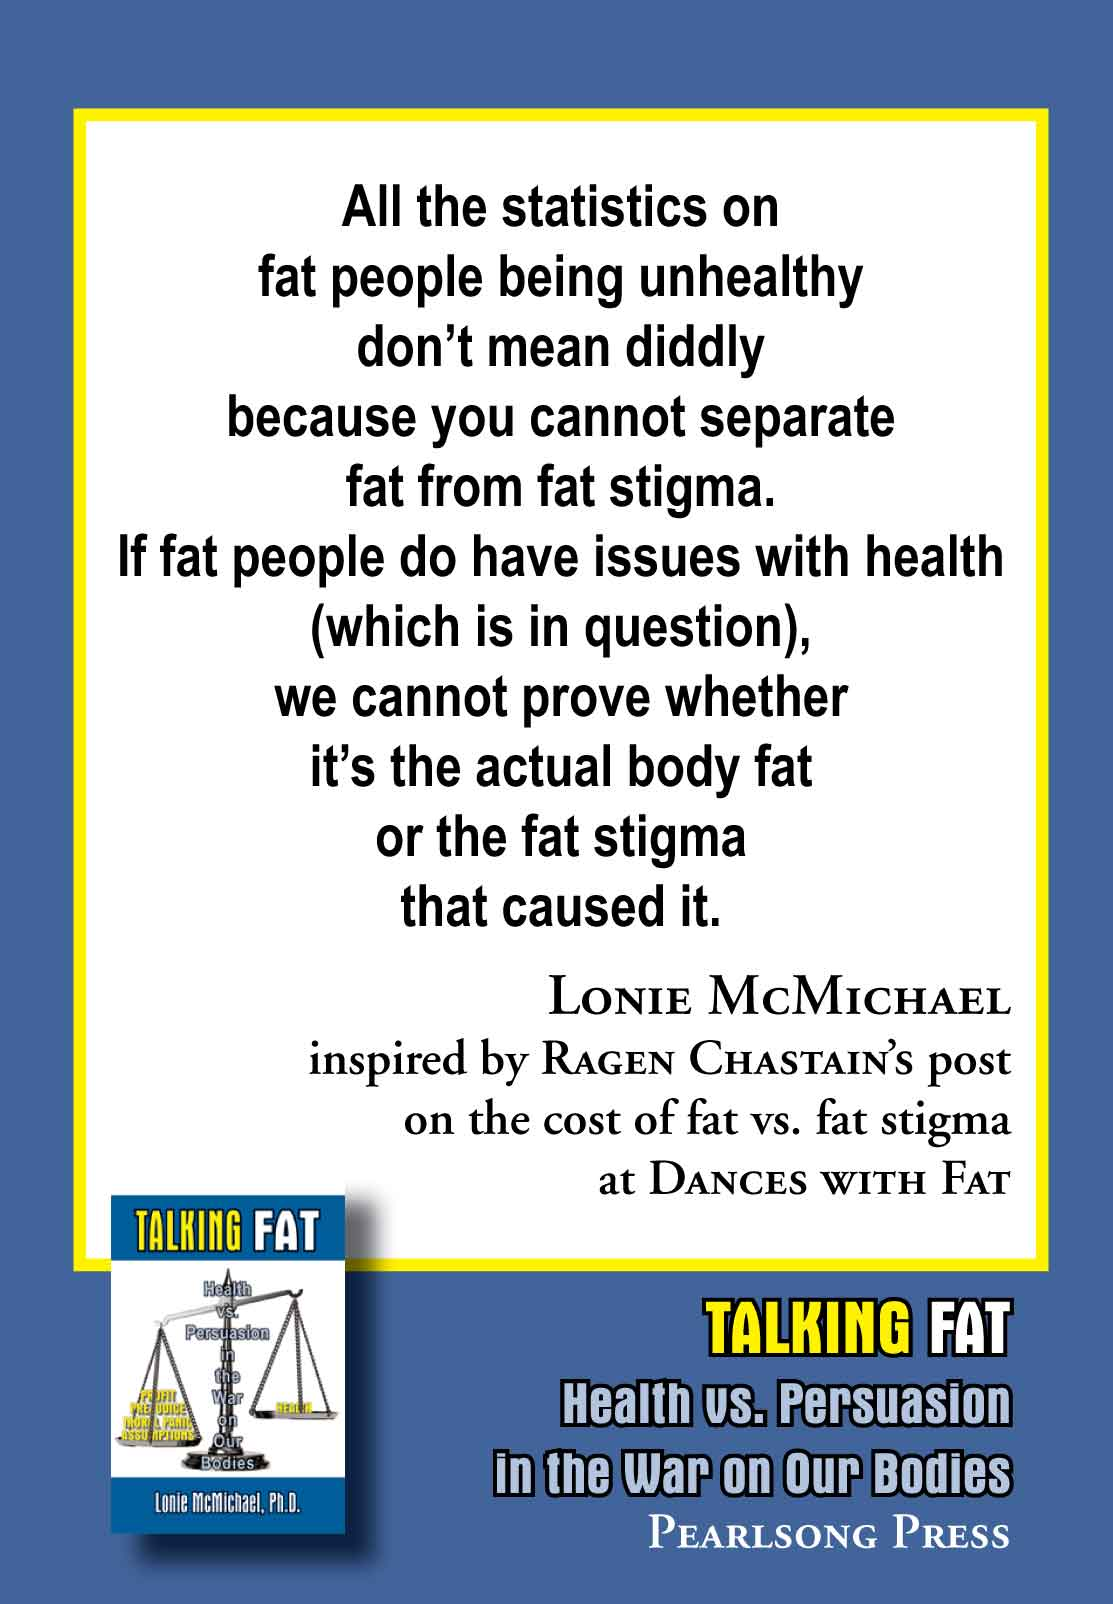 Quote from Lonie McMichael, author of Talking Fat: Health vs. Persuasion in the War on Our Bodies